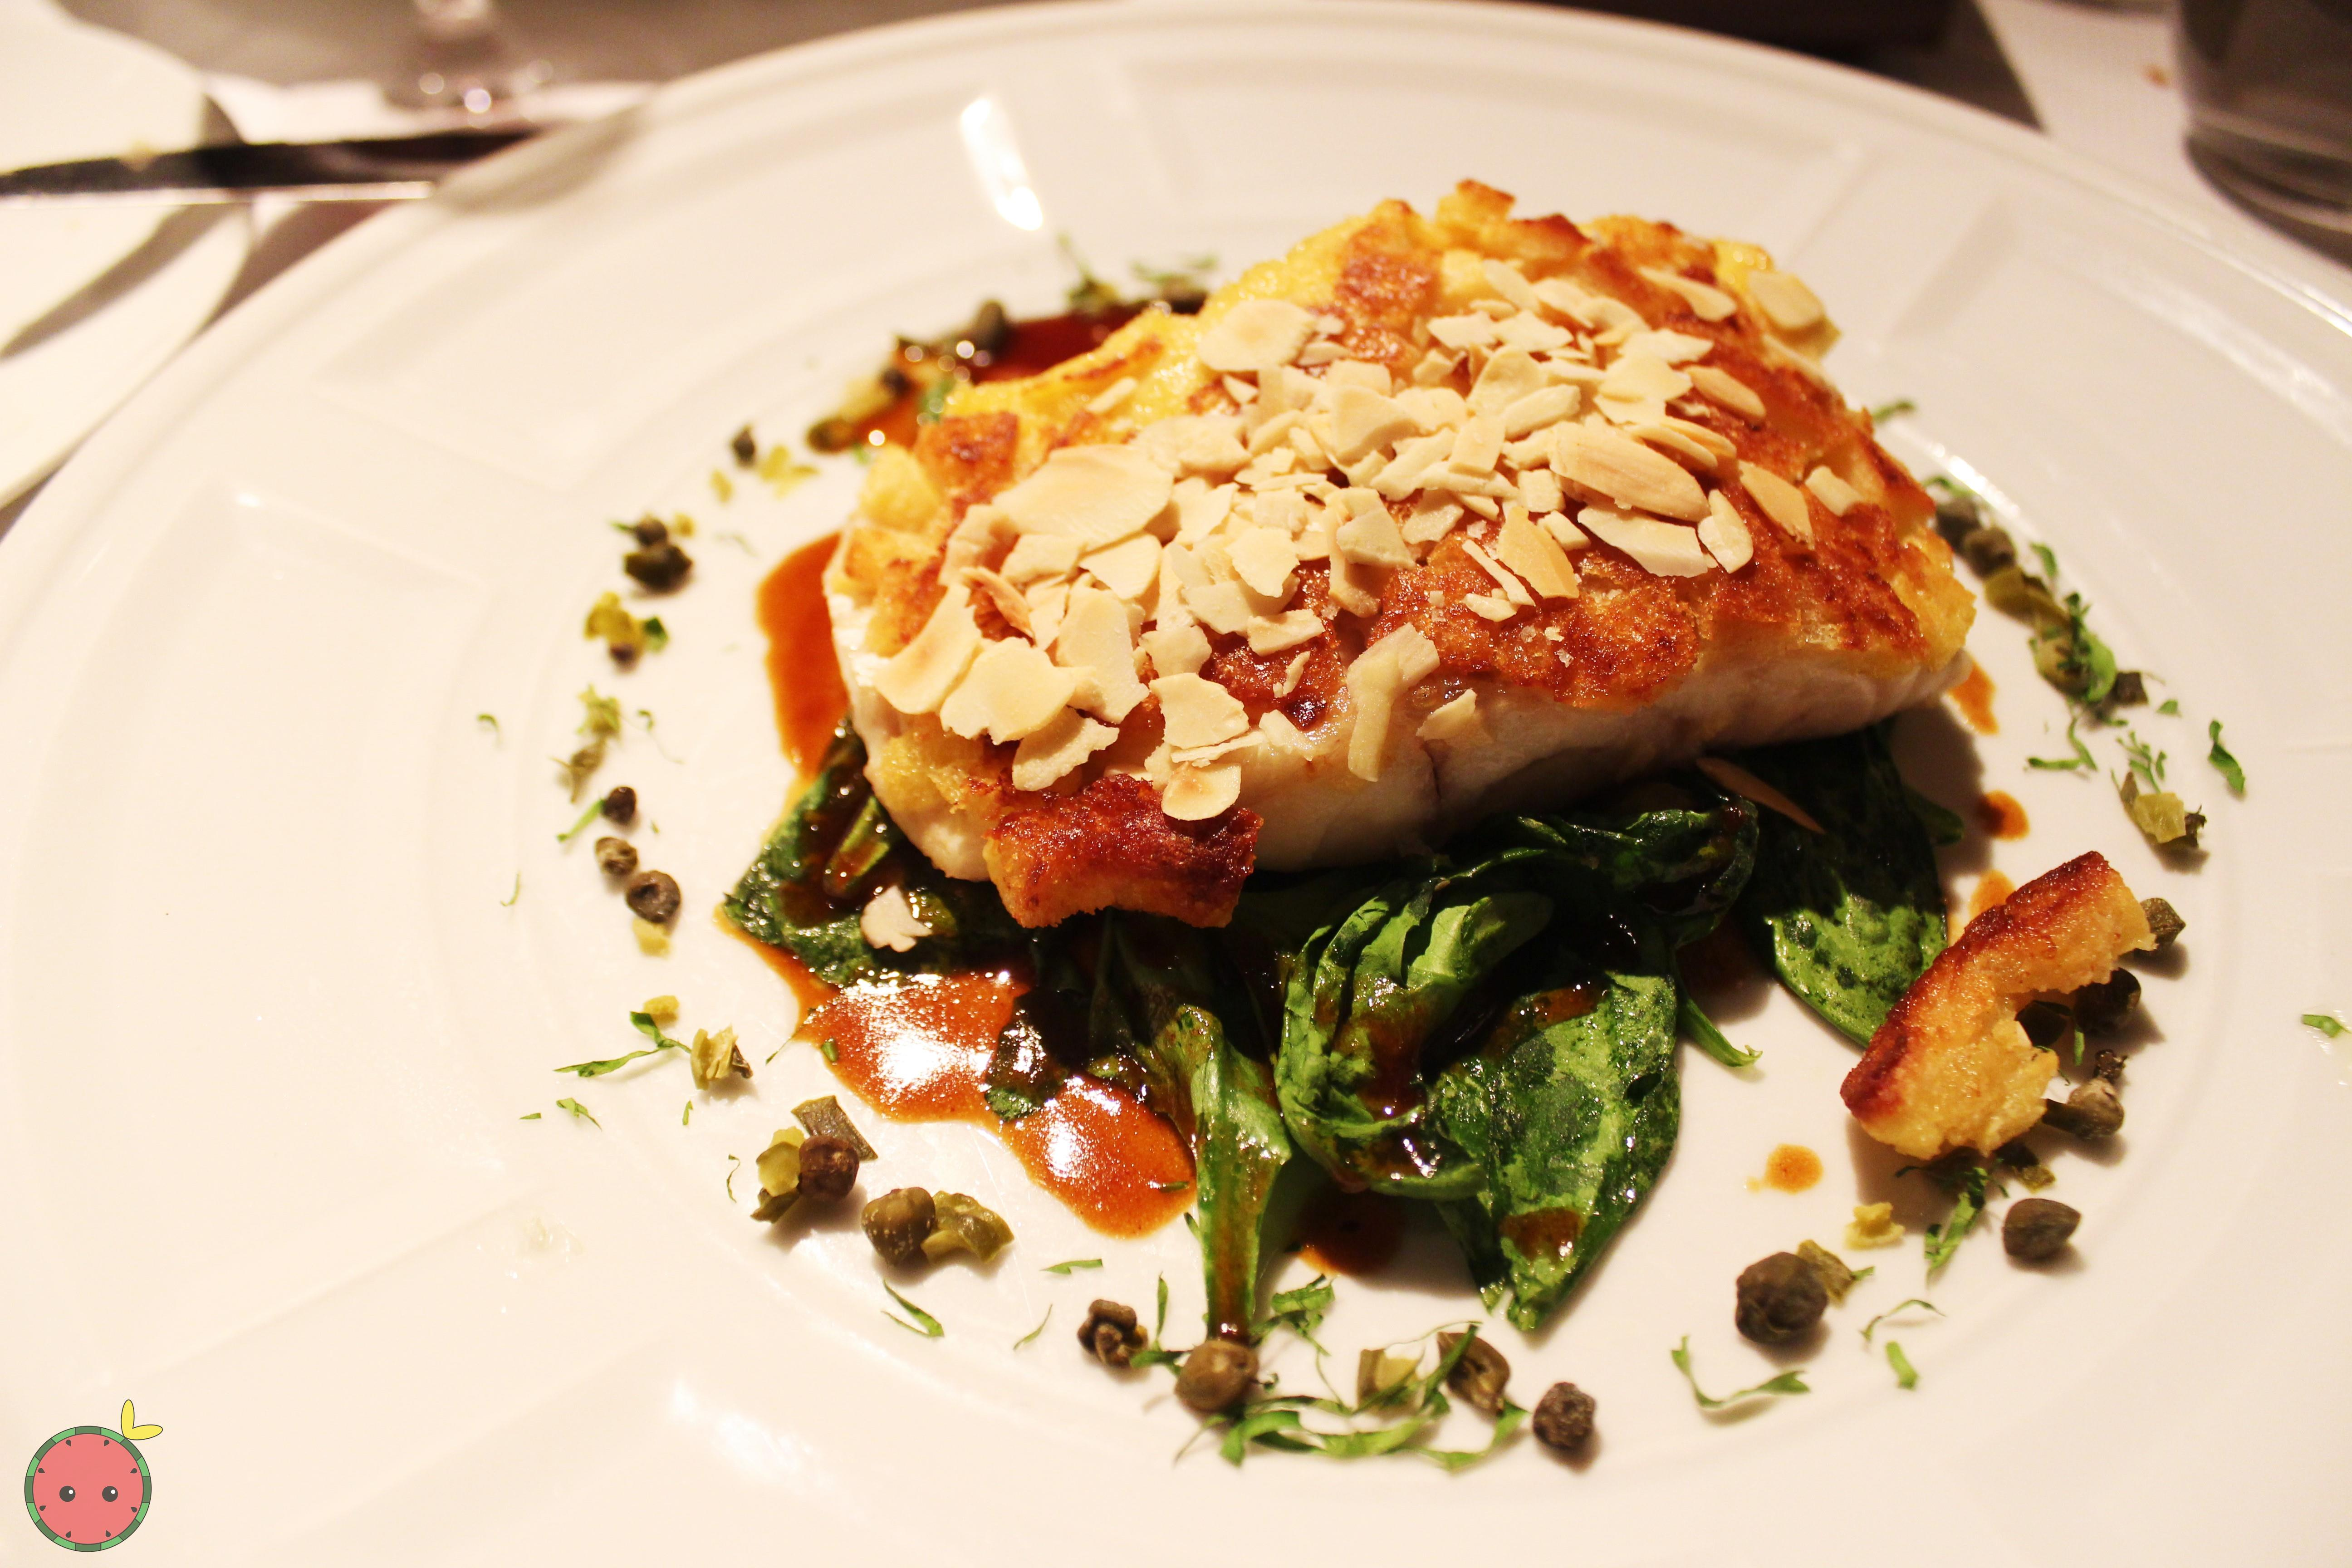 Crusty sea bass with almonds, lemon, and caper vinaigrette